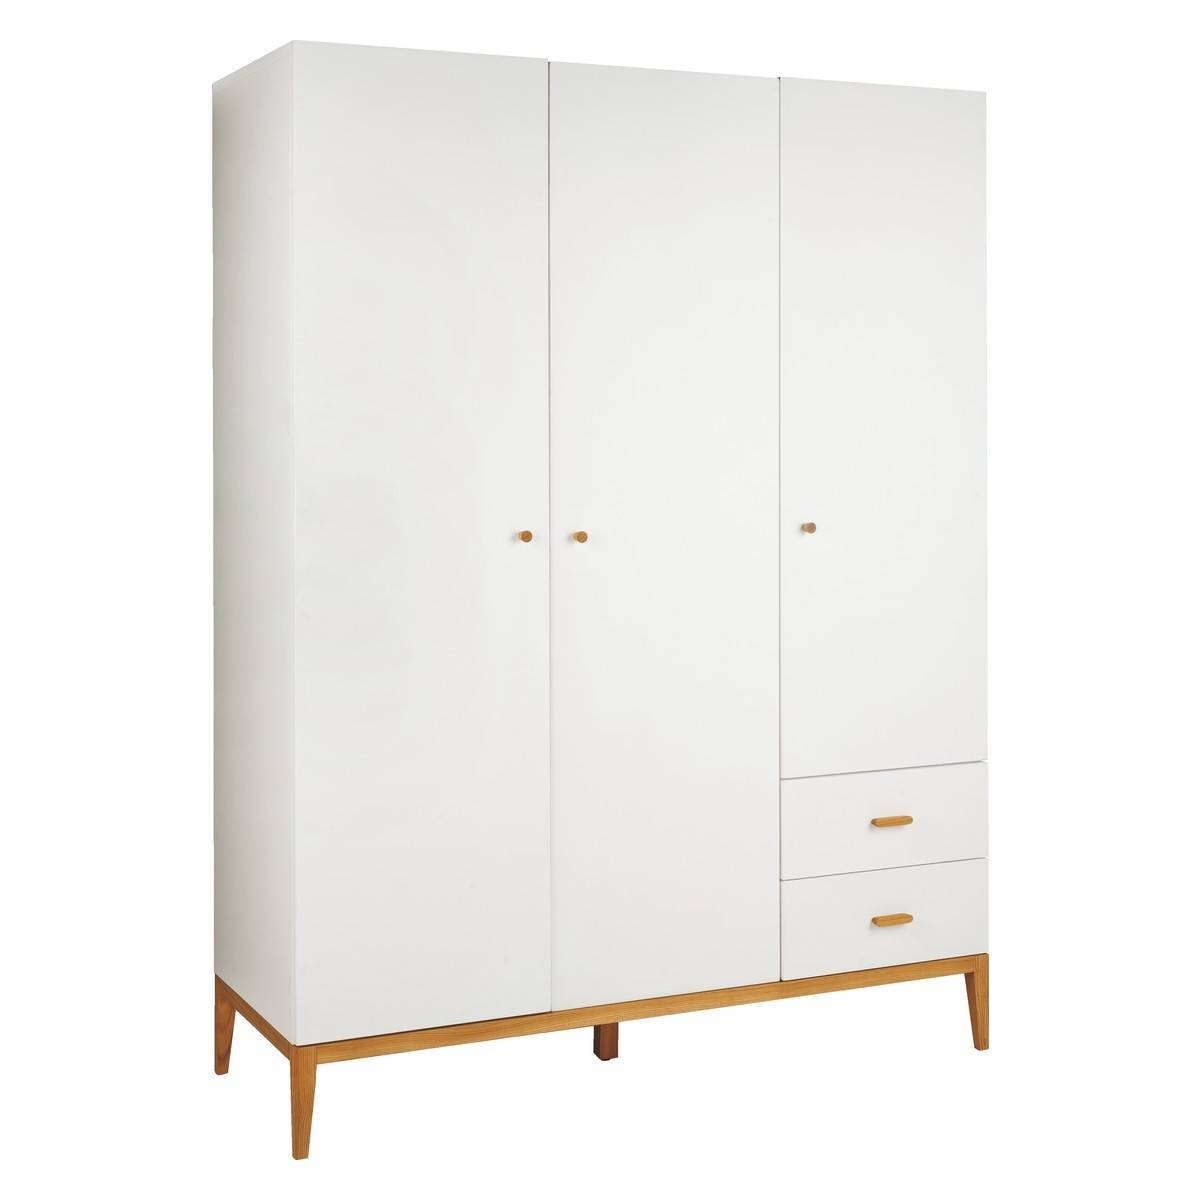 Tatsuma White And Ash 3 Door Wardrobe | Buy Now At Habitat Uk for 3 Door White Wardrobes (Image 26 of 30)